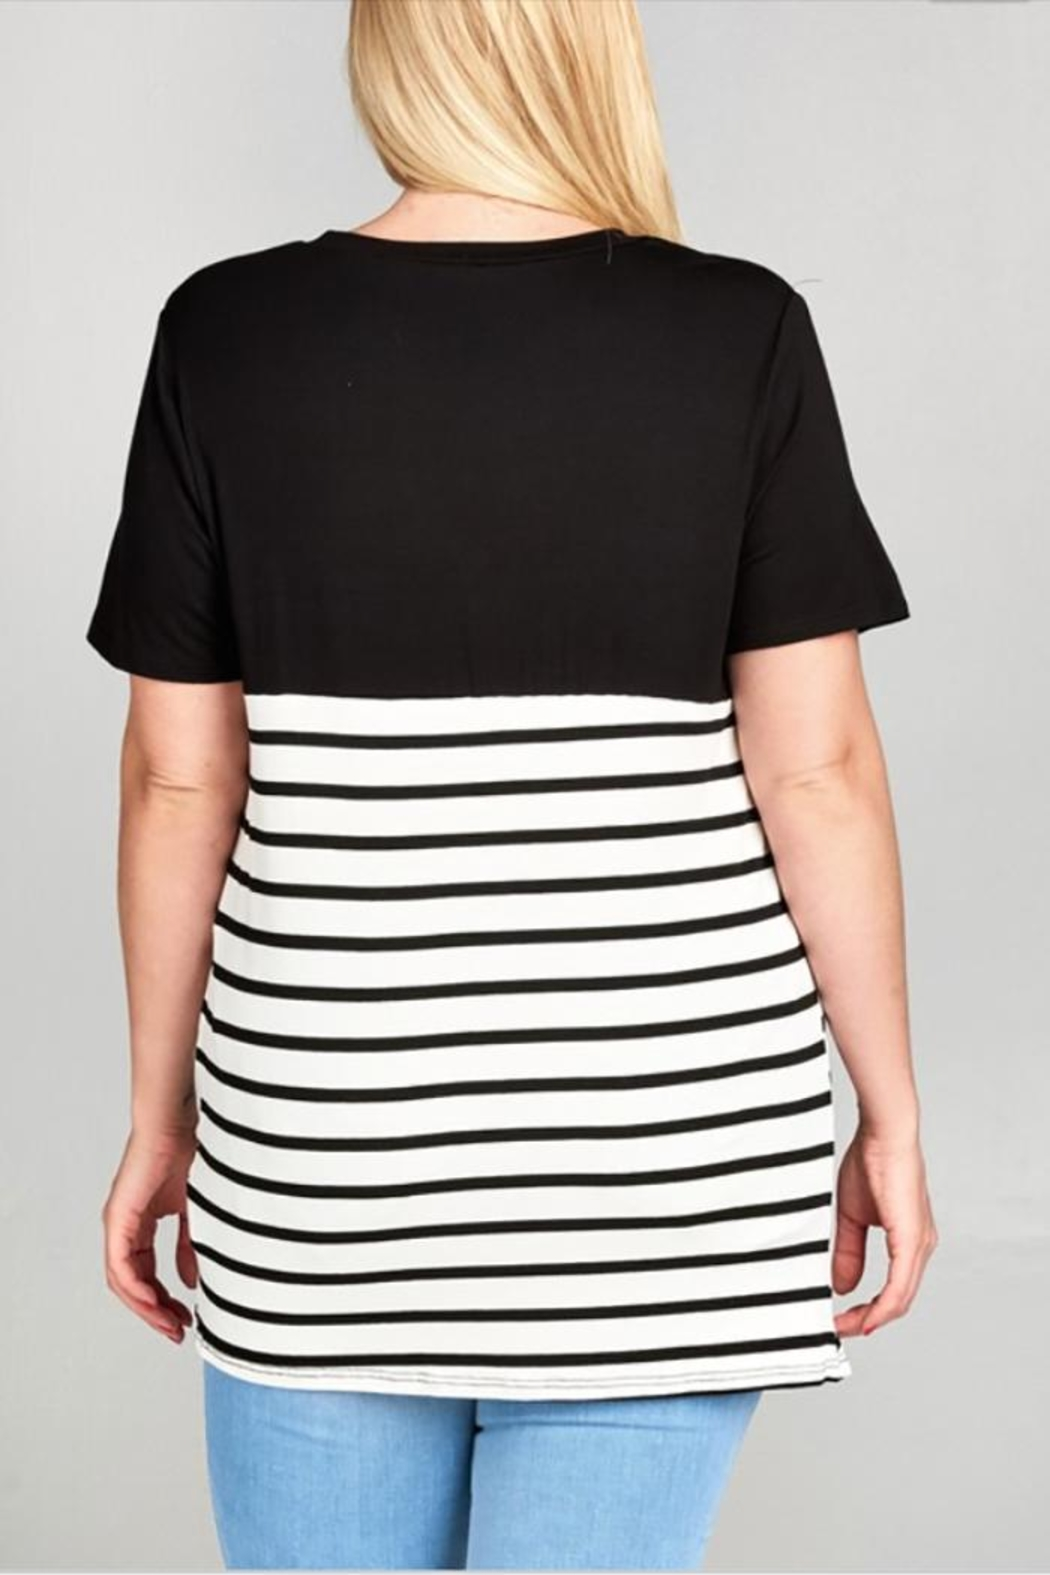 UMG PLUS Side Knotted Top - Front Full Image